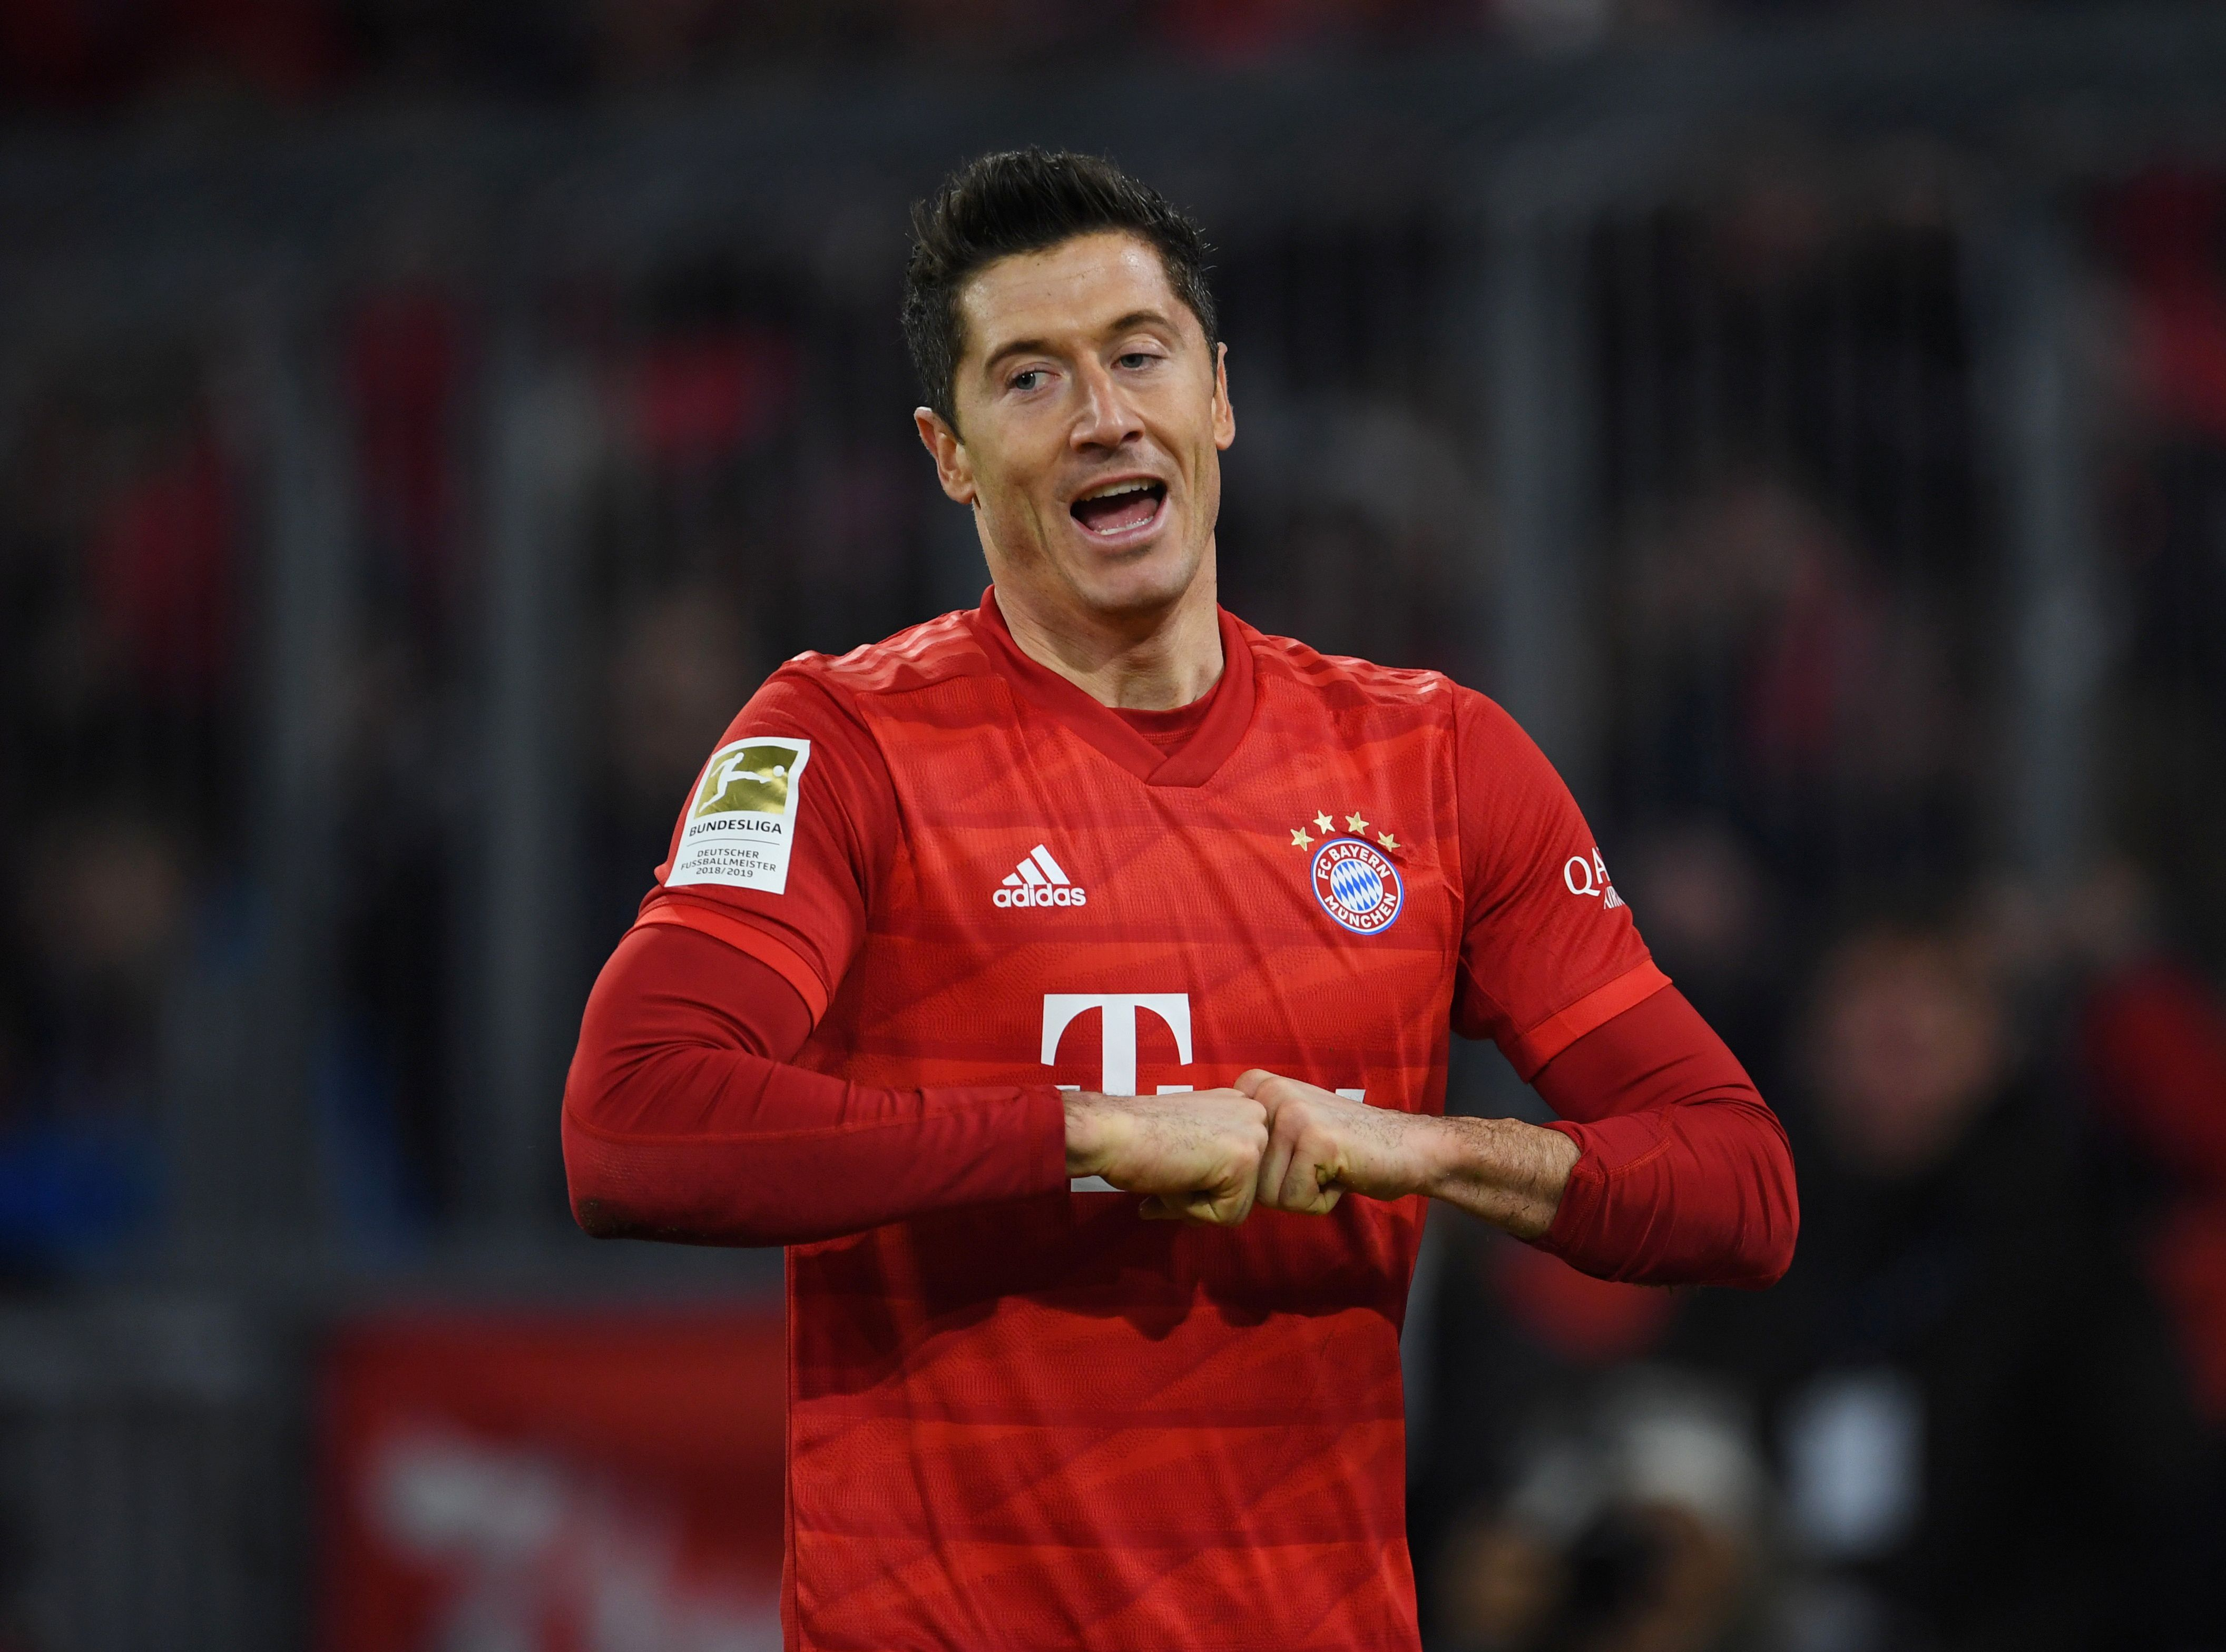 Football - Etranger - Bundesliga : Mönchengladbach-Bayern Munich en direct